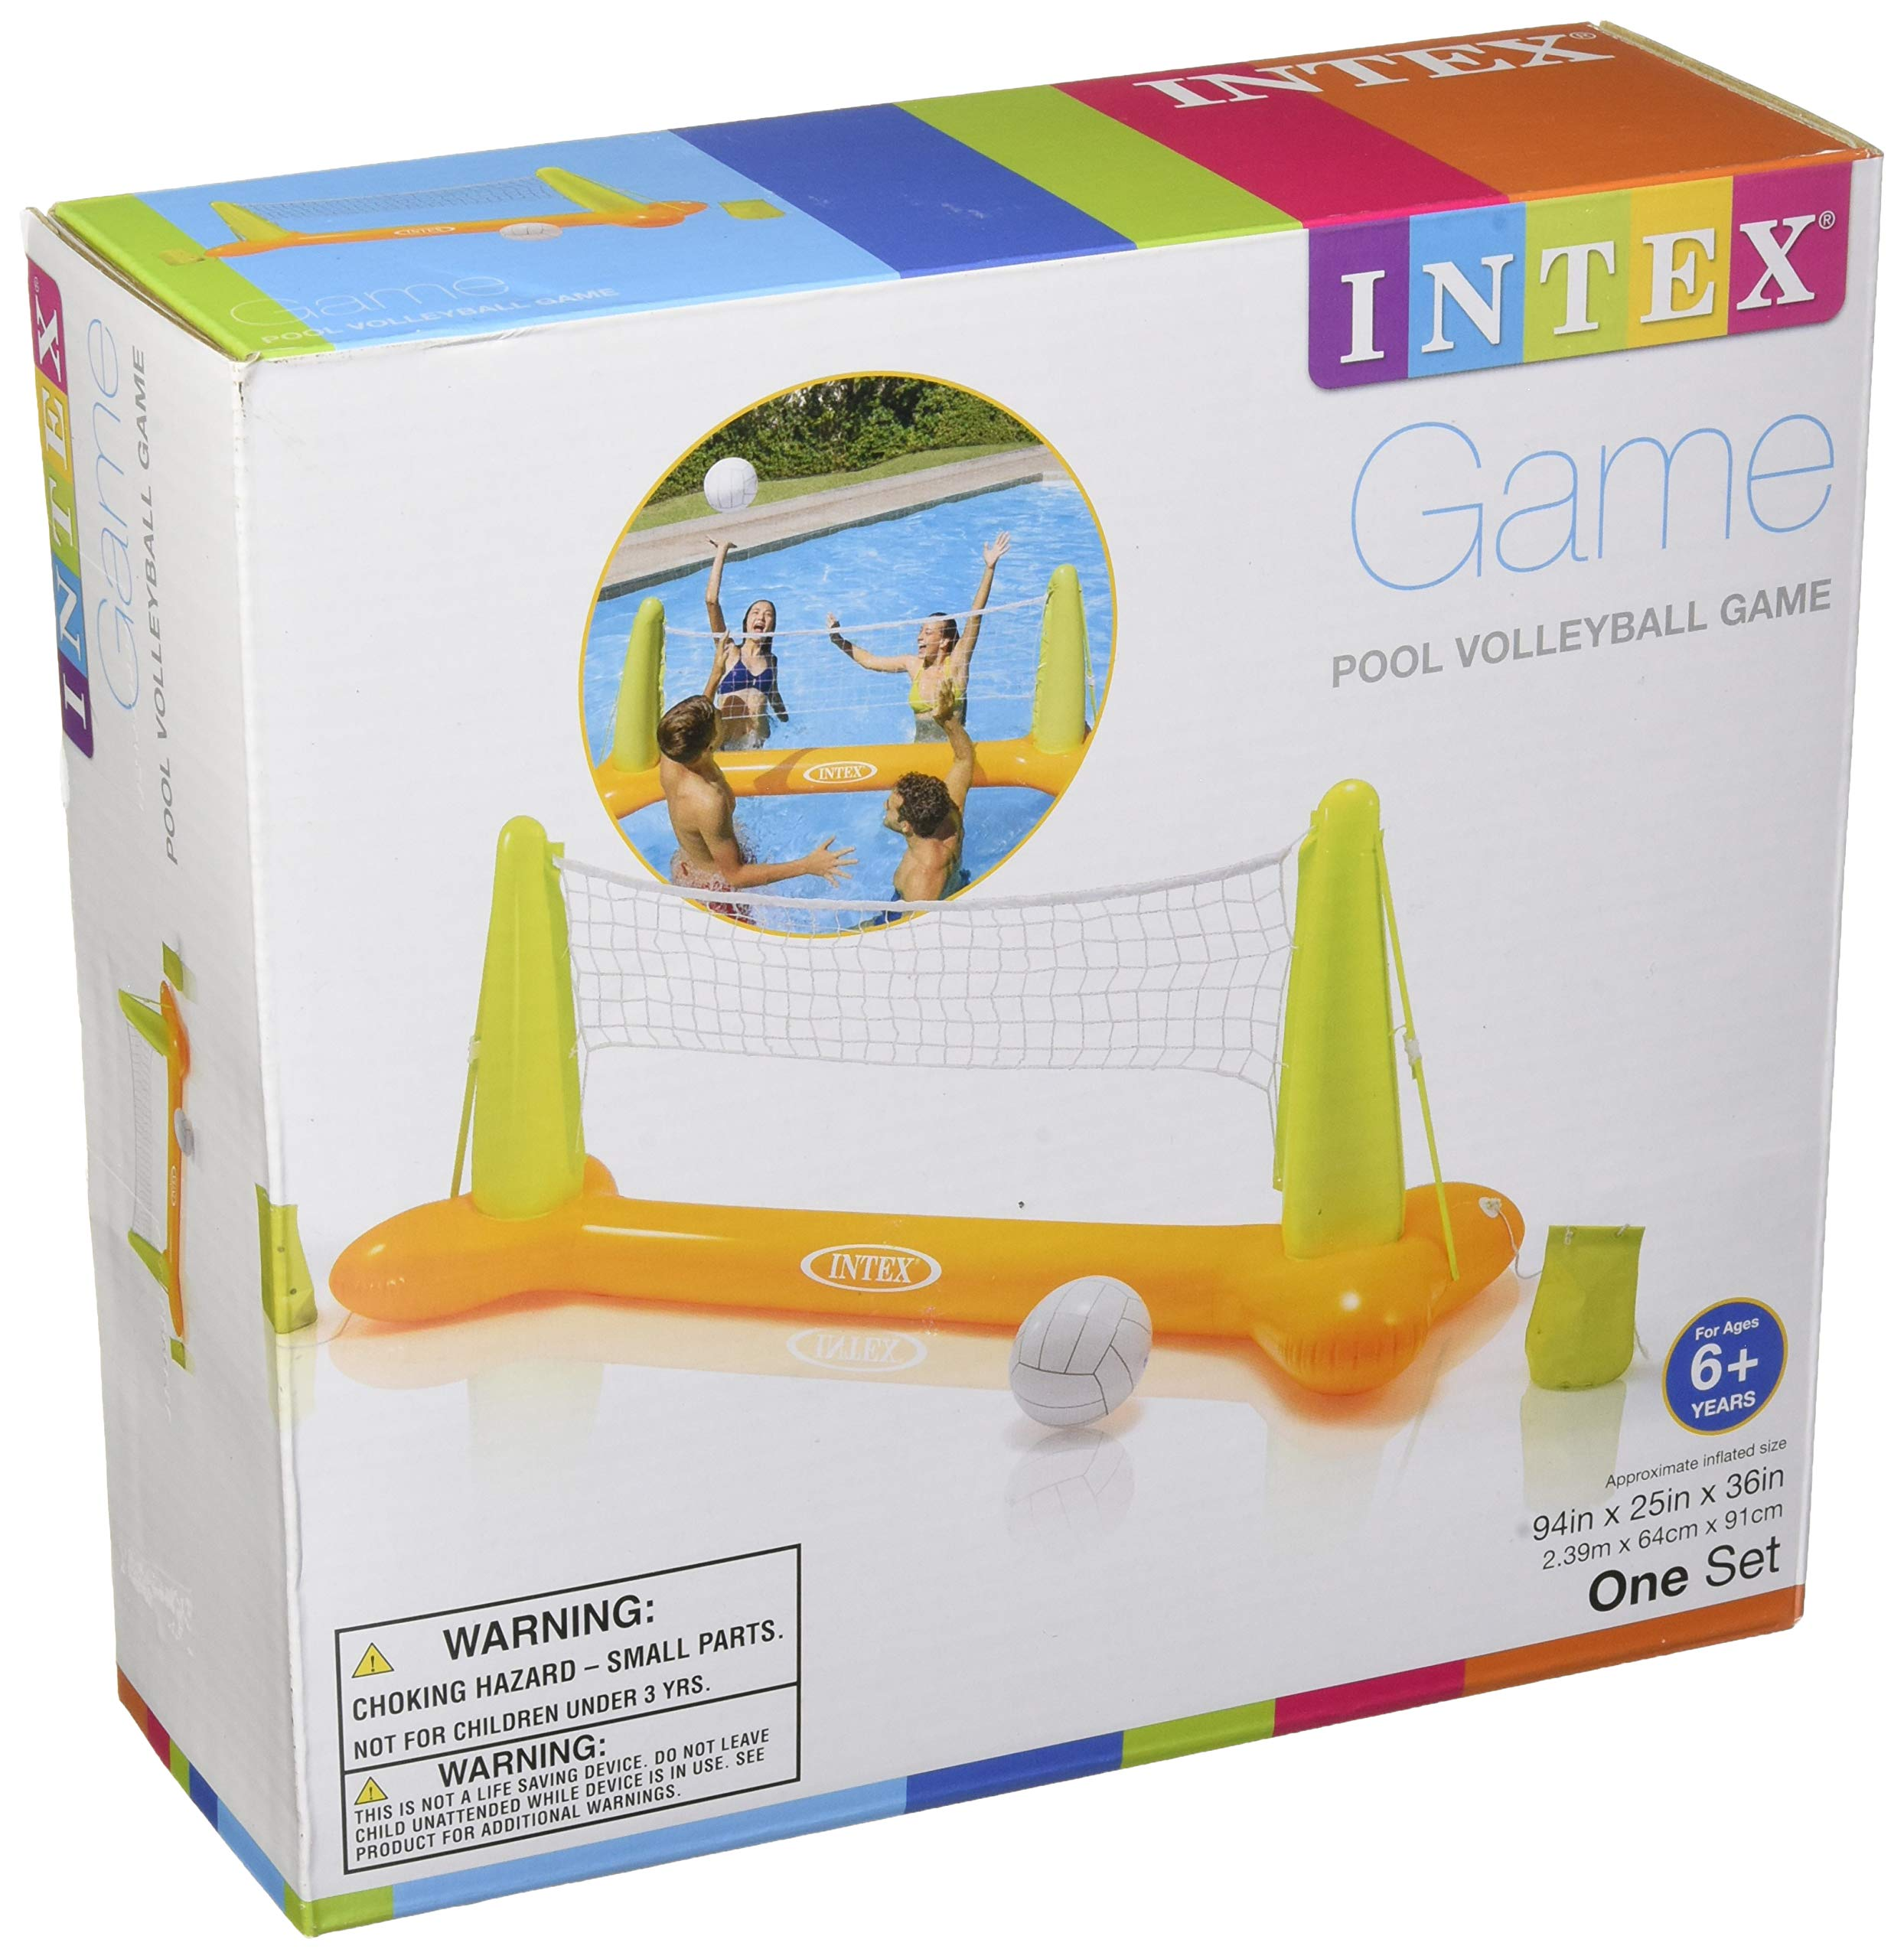 Intex Pool Volleyball Game, 94in X 25in X 36in, for Ages 6+ by Intex